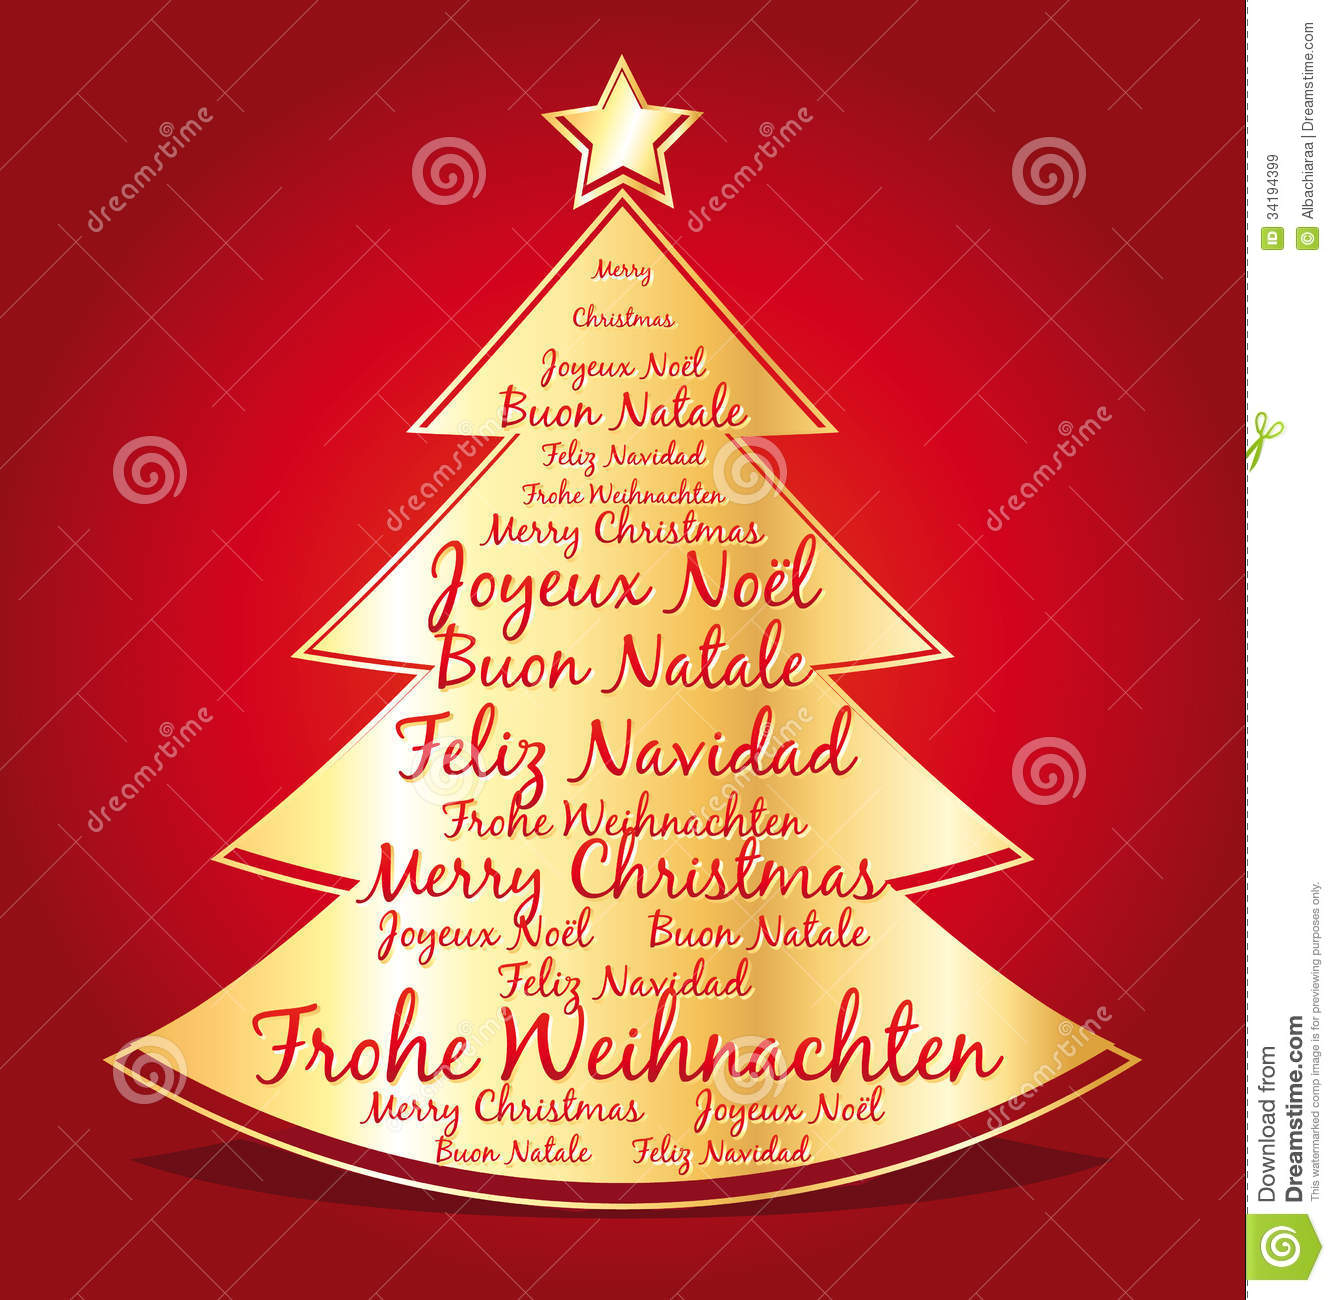 Merry Christmas In Several Languages In A Golden Christmas ...